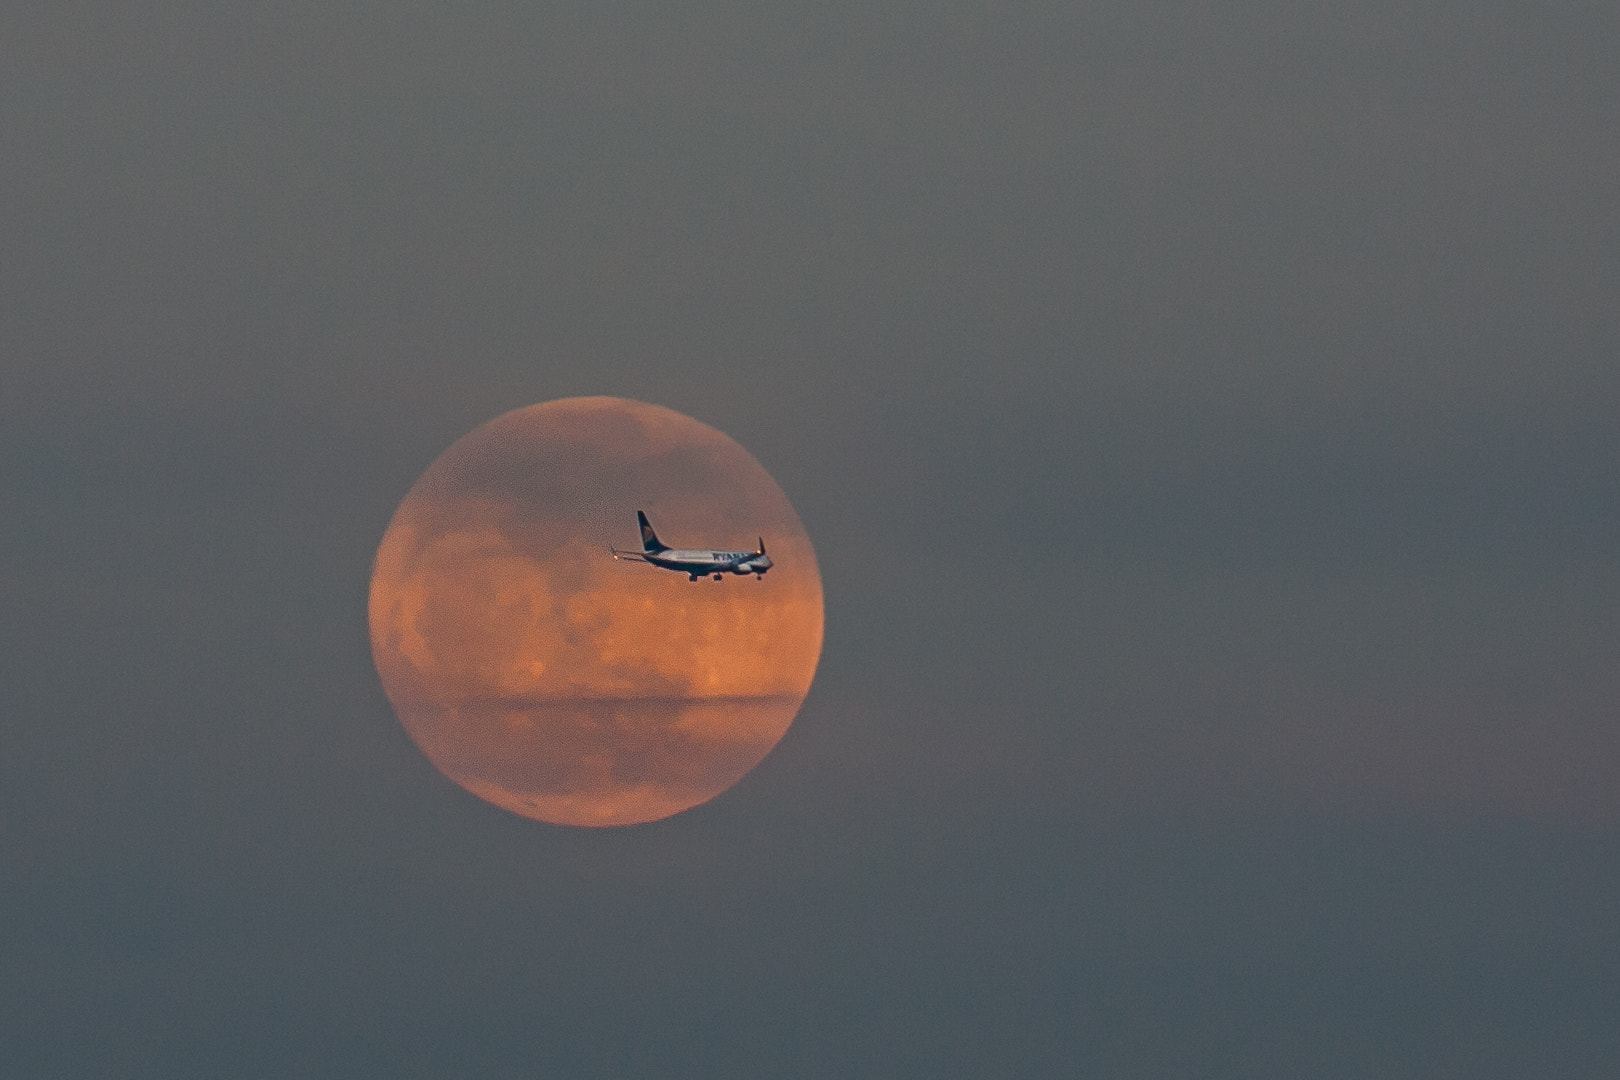 Photograph Super Full Moon with airplane by L. G. - luigig75 on 500px